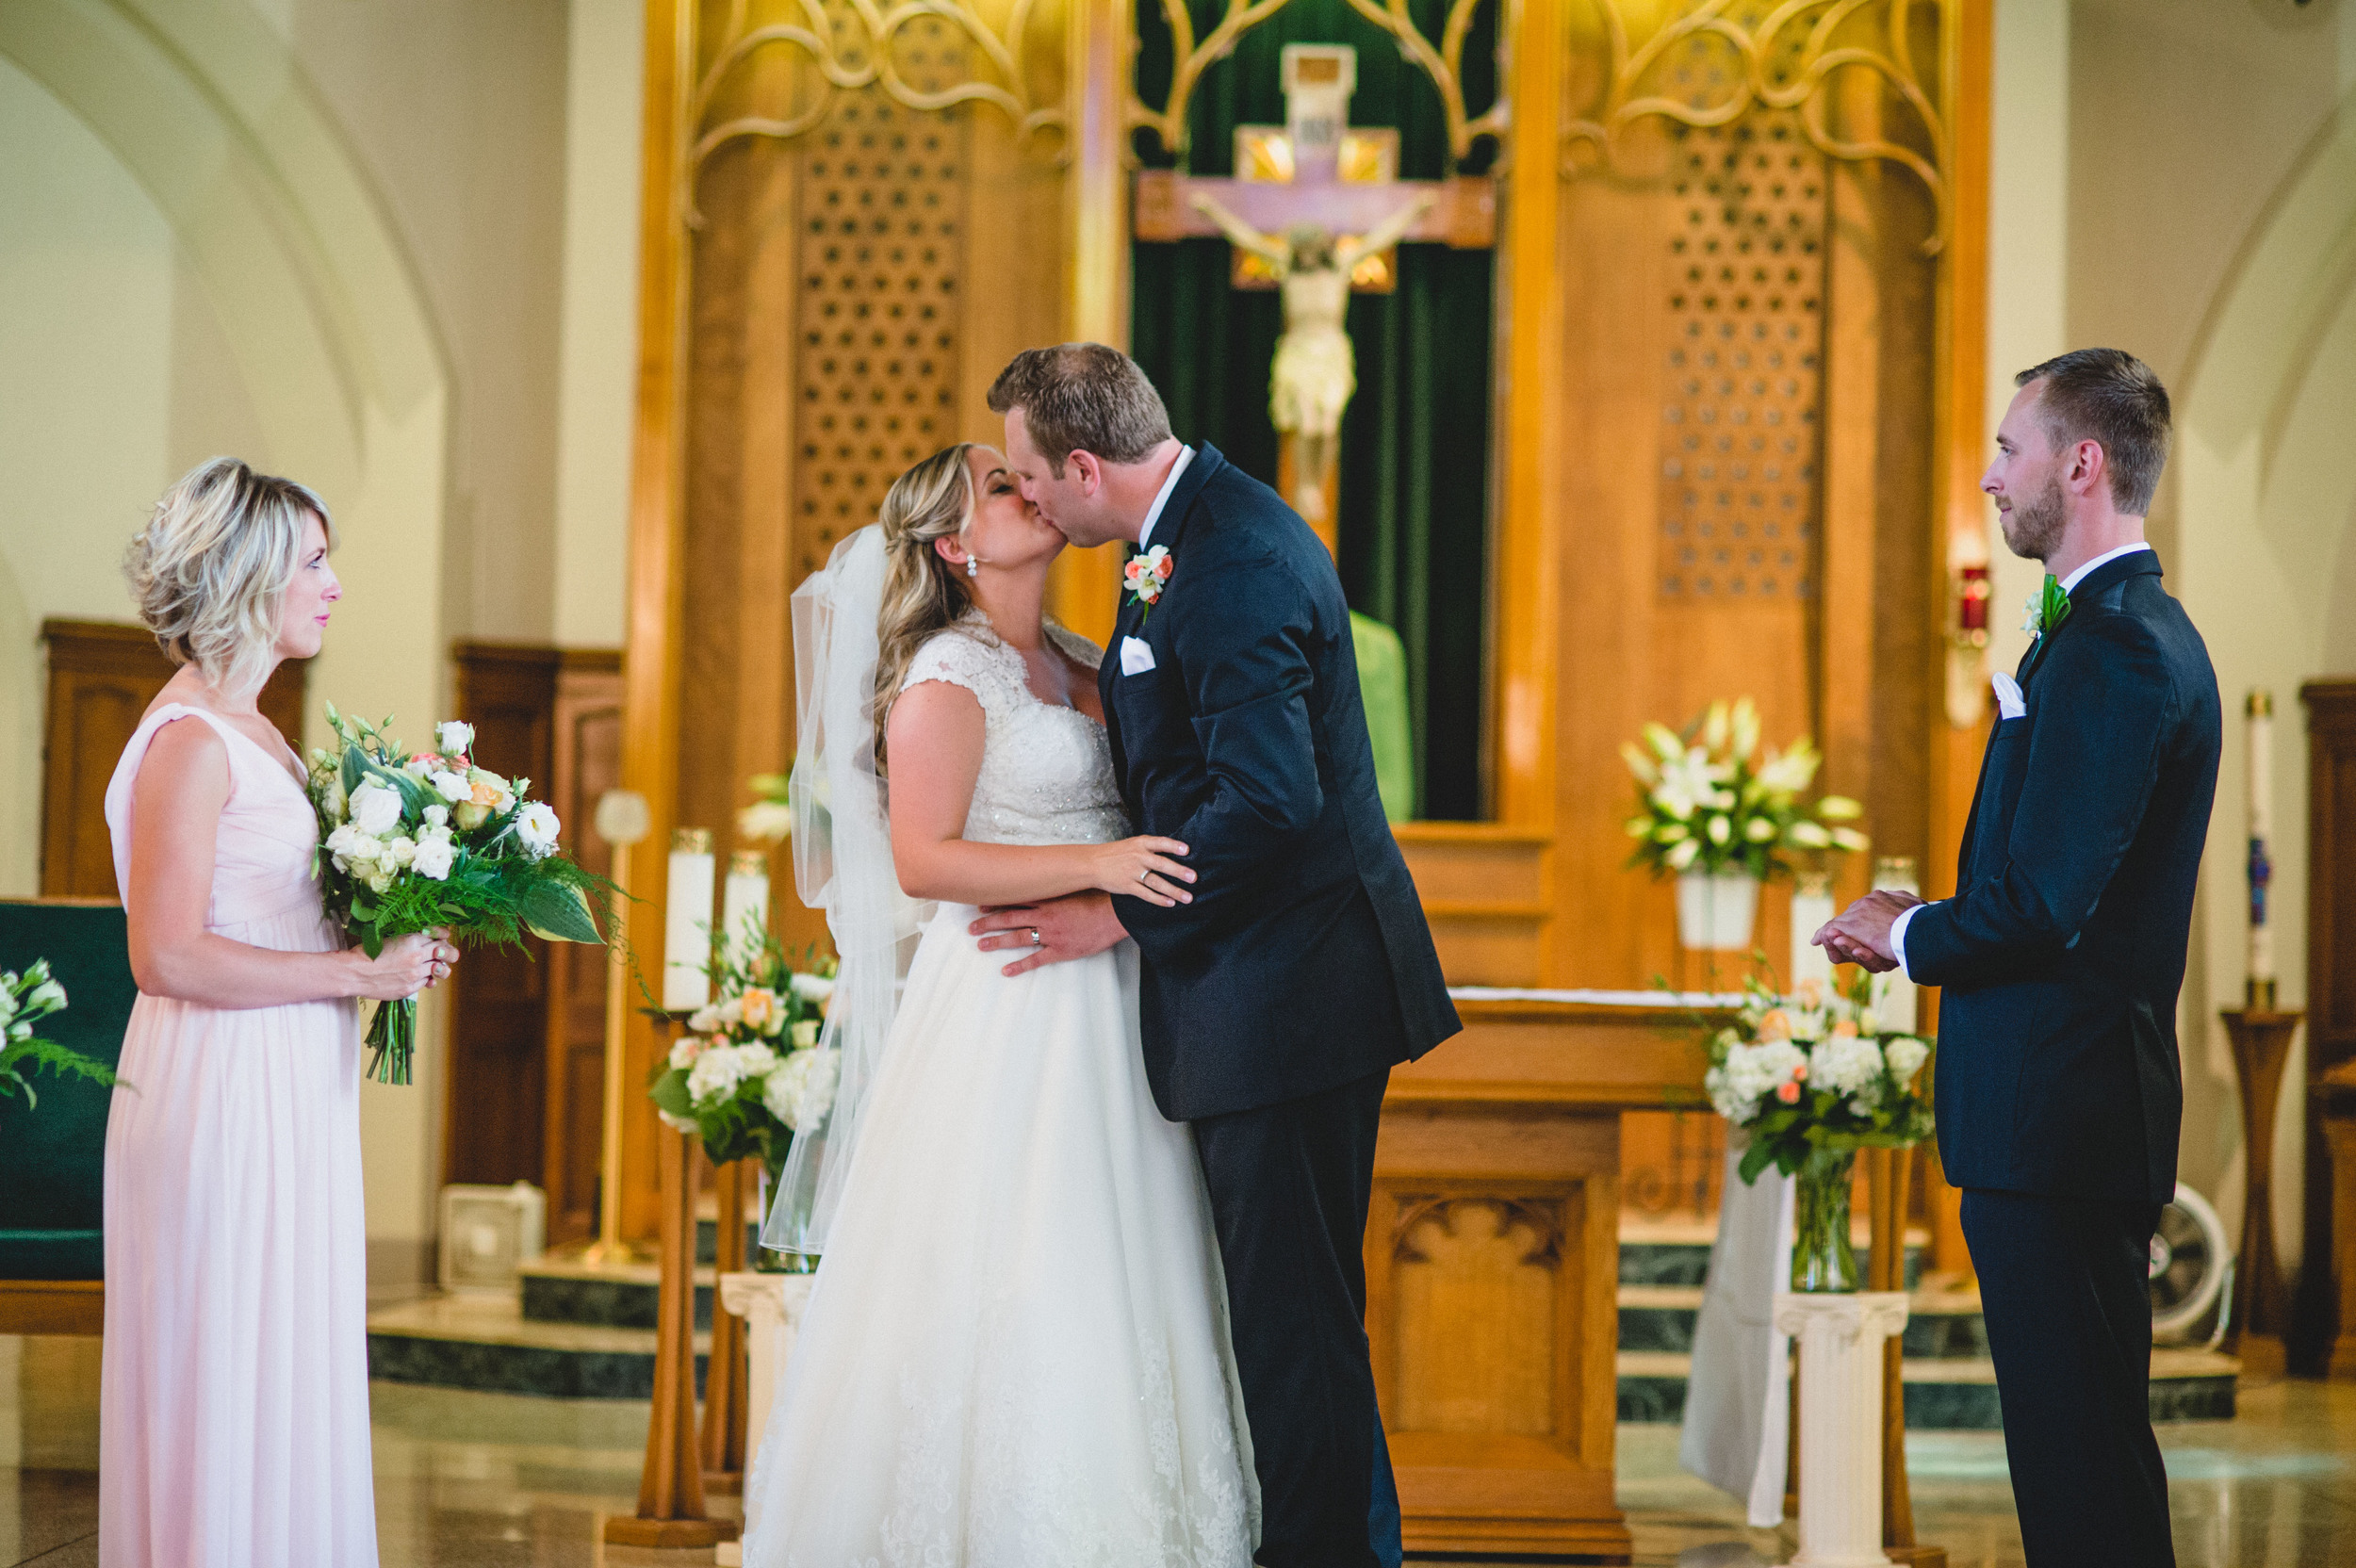 Vancouver St Augustine 's Church wedding photographer edward lai photography